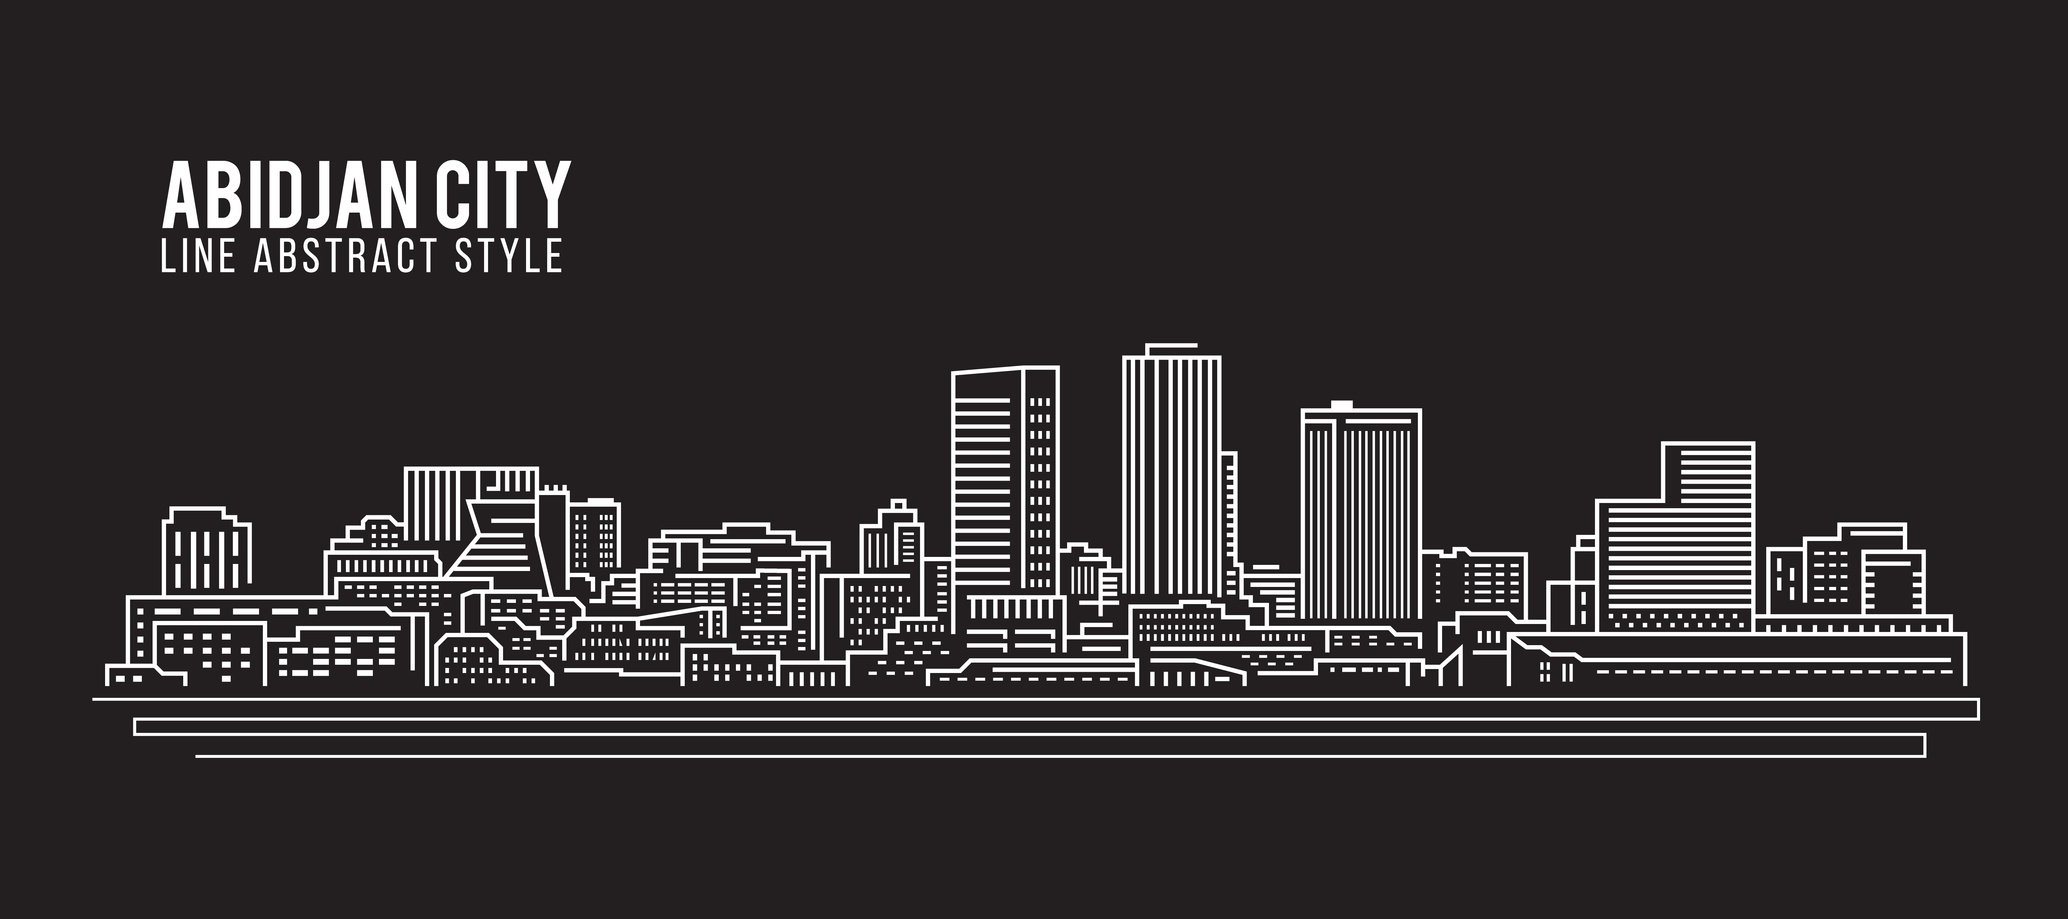 Cityscape Building Line art Vector Illustration design - Abidjan city